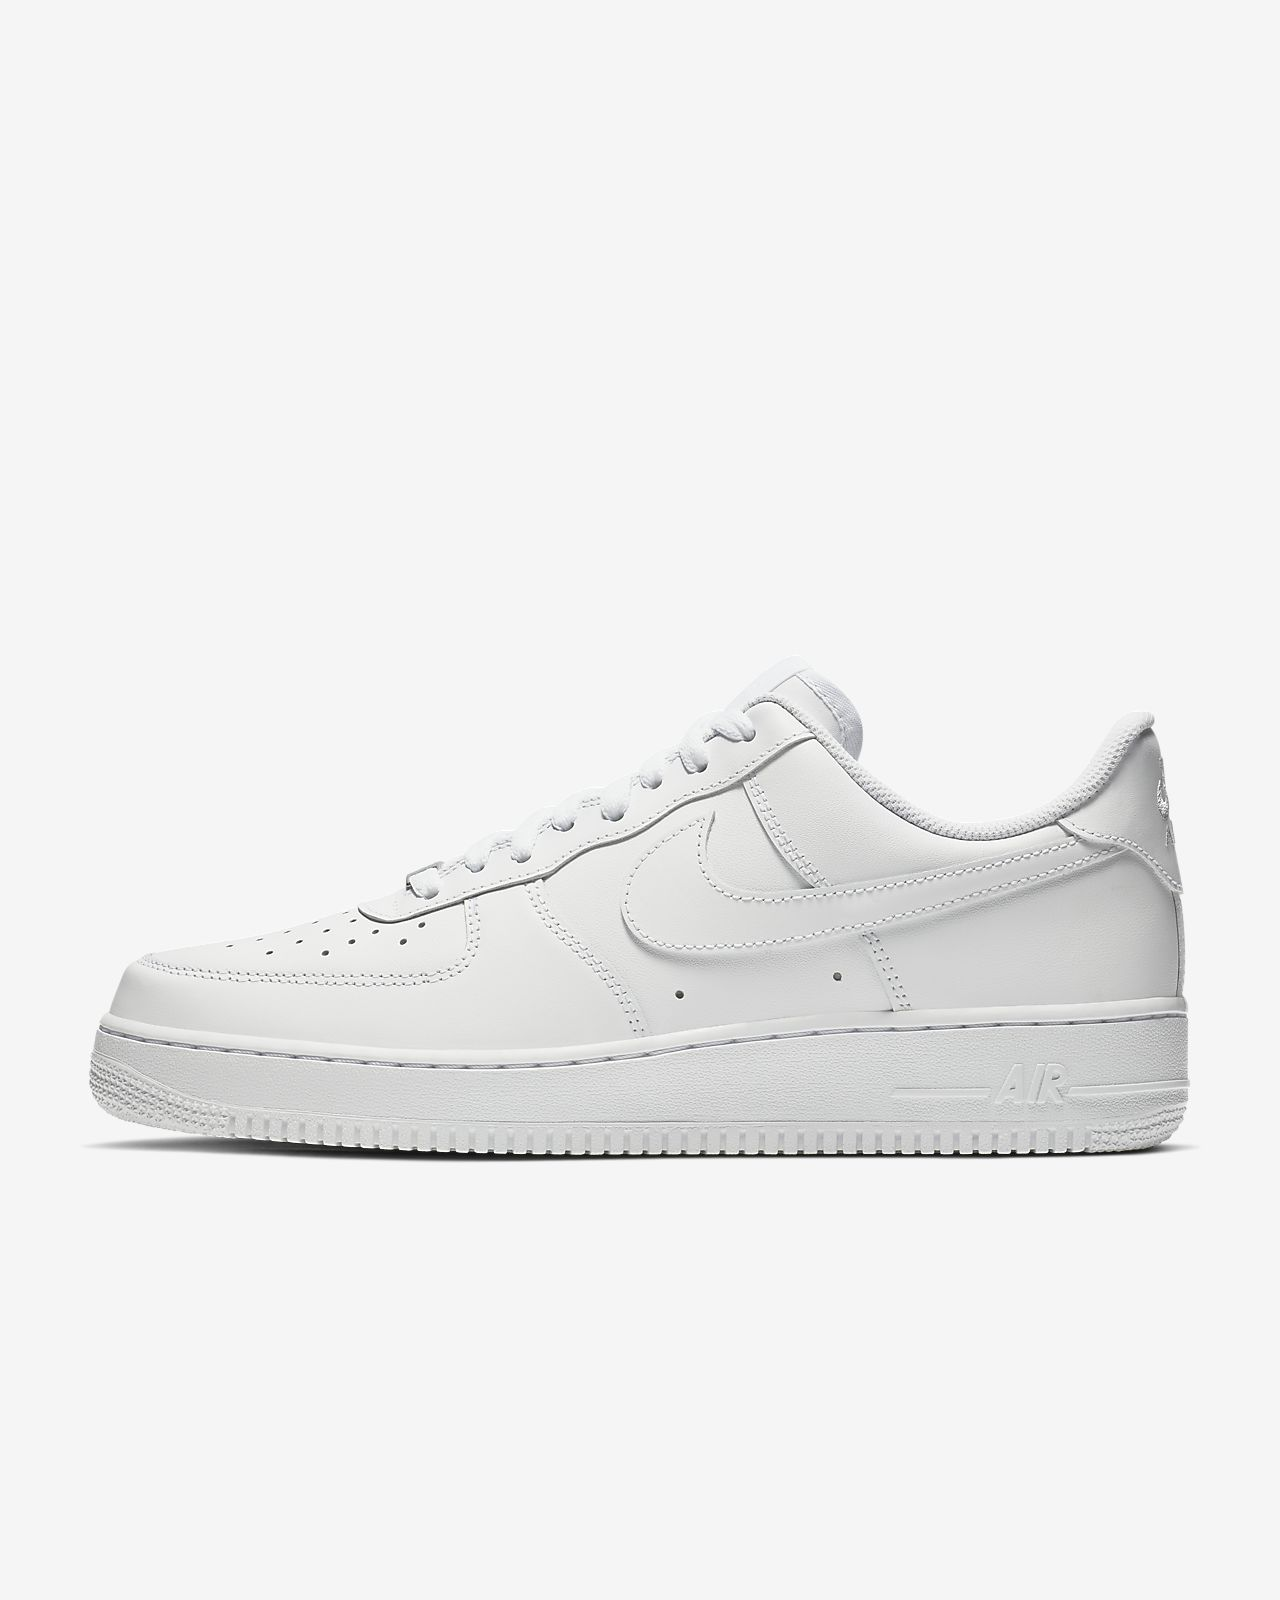 4ce80f3e2ebb1 Nike Air Force 1 '07 Men's Shoe. Nike.com CA